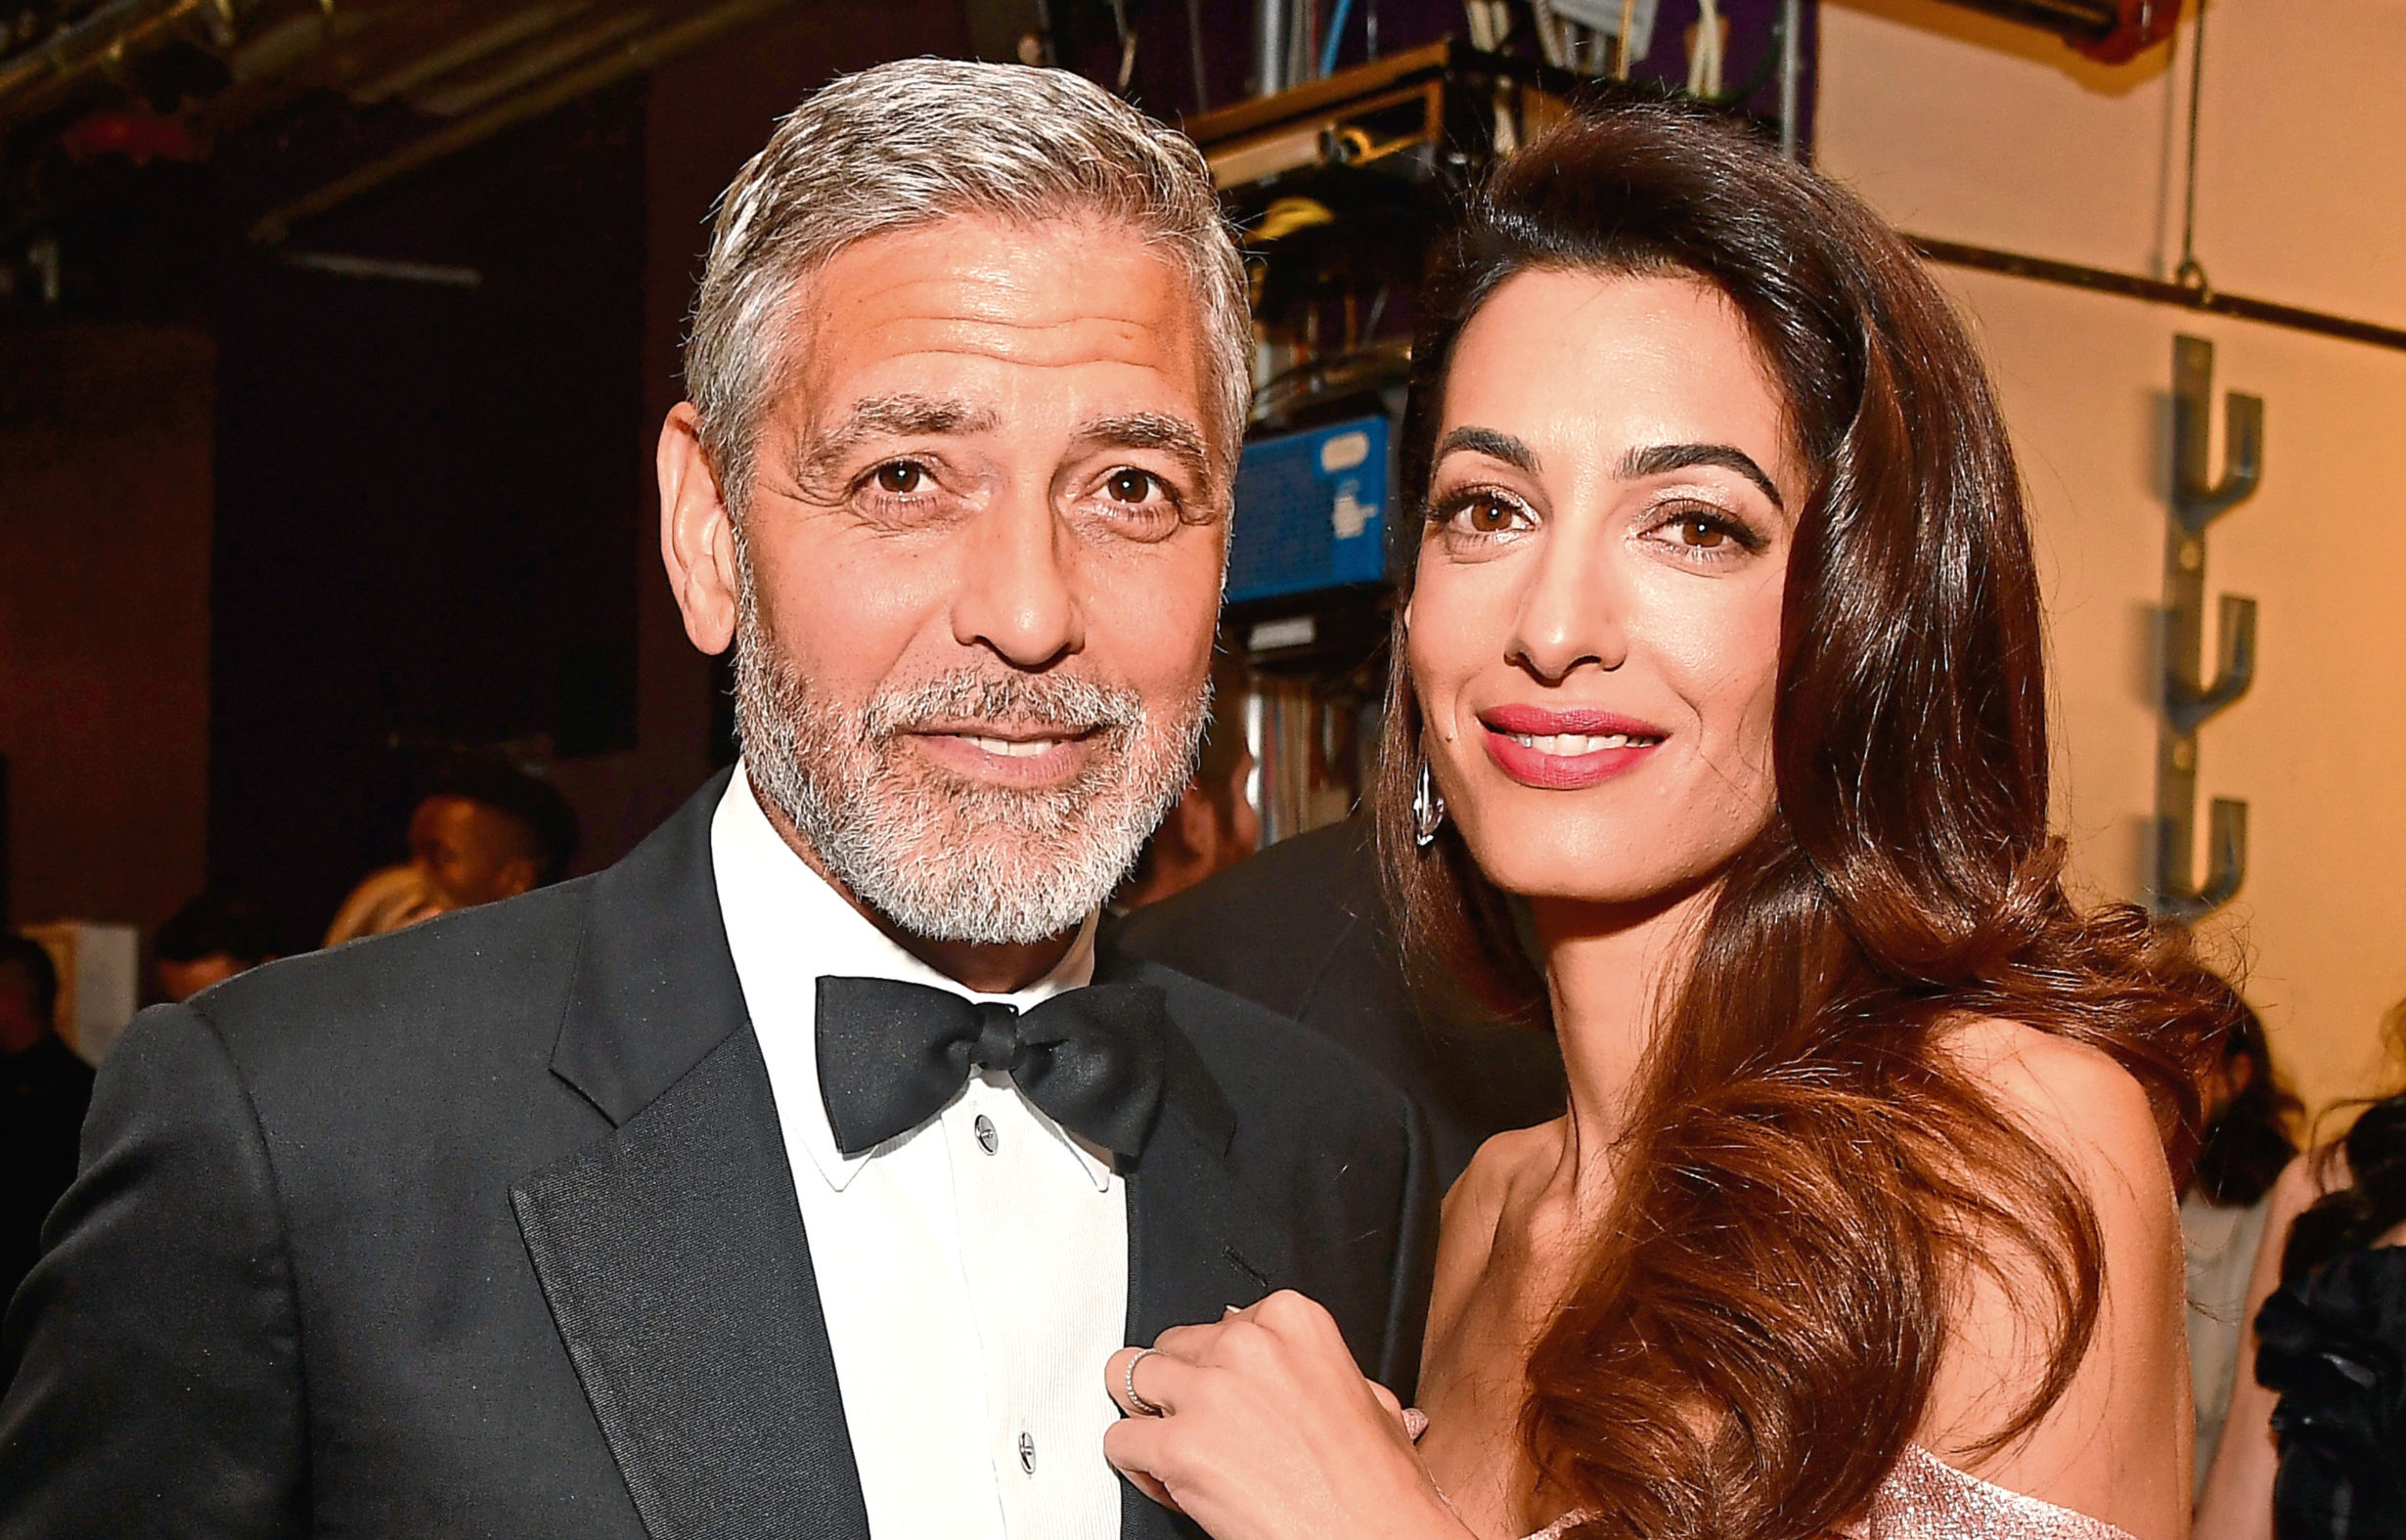 George Clooney (L) and Amal Clooney attend the American Film Institute's 46th Life Achievement Award Gala Tribute to George Clooney at Dolby Theatre in Hollywood, California.  (Frazer Harrison/Getty Images for Turner)